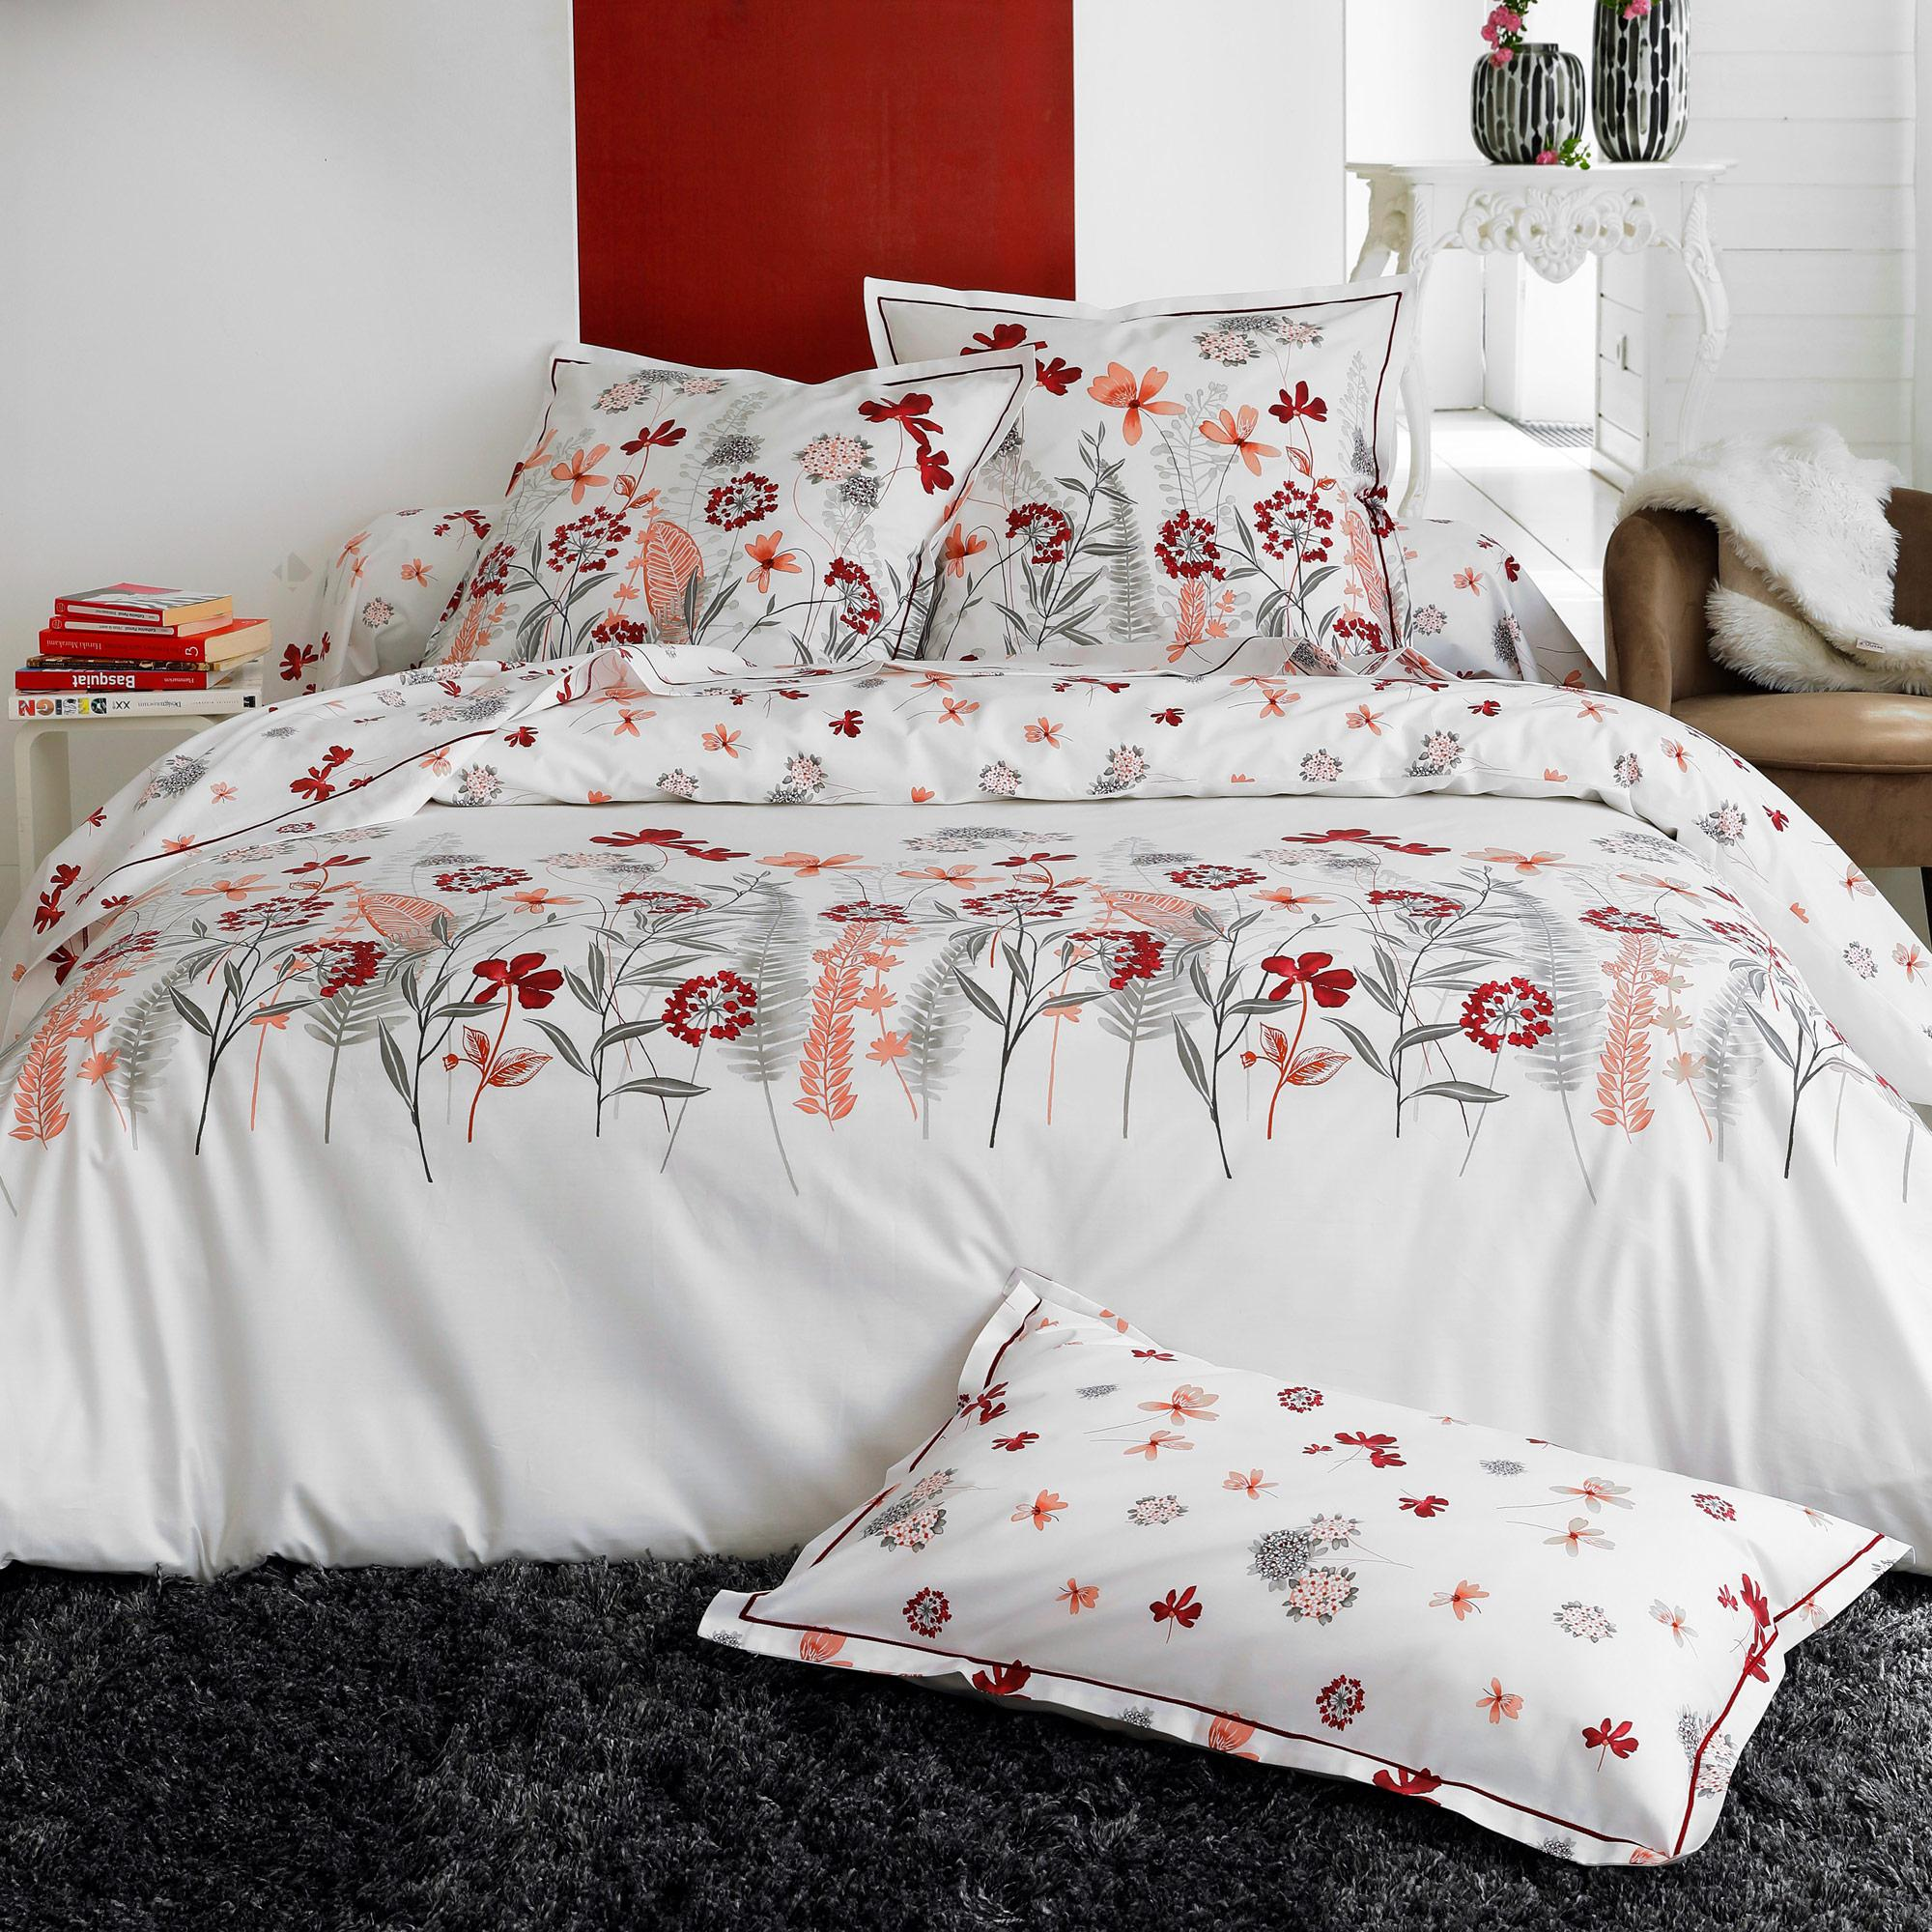 housse de couette 300x240 cm percale pur coton petite. Black Bedroom Furniture Sets. Home Design Ideas